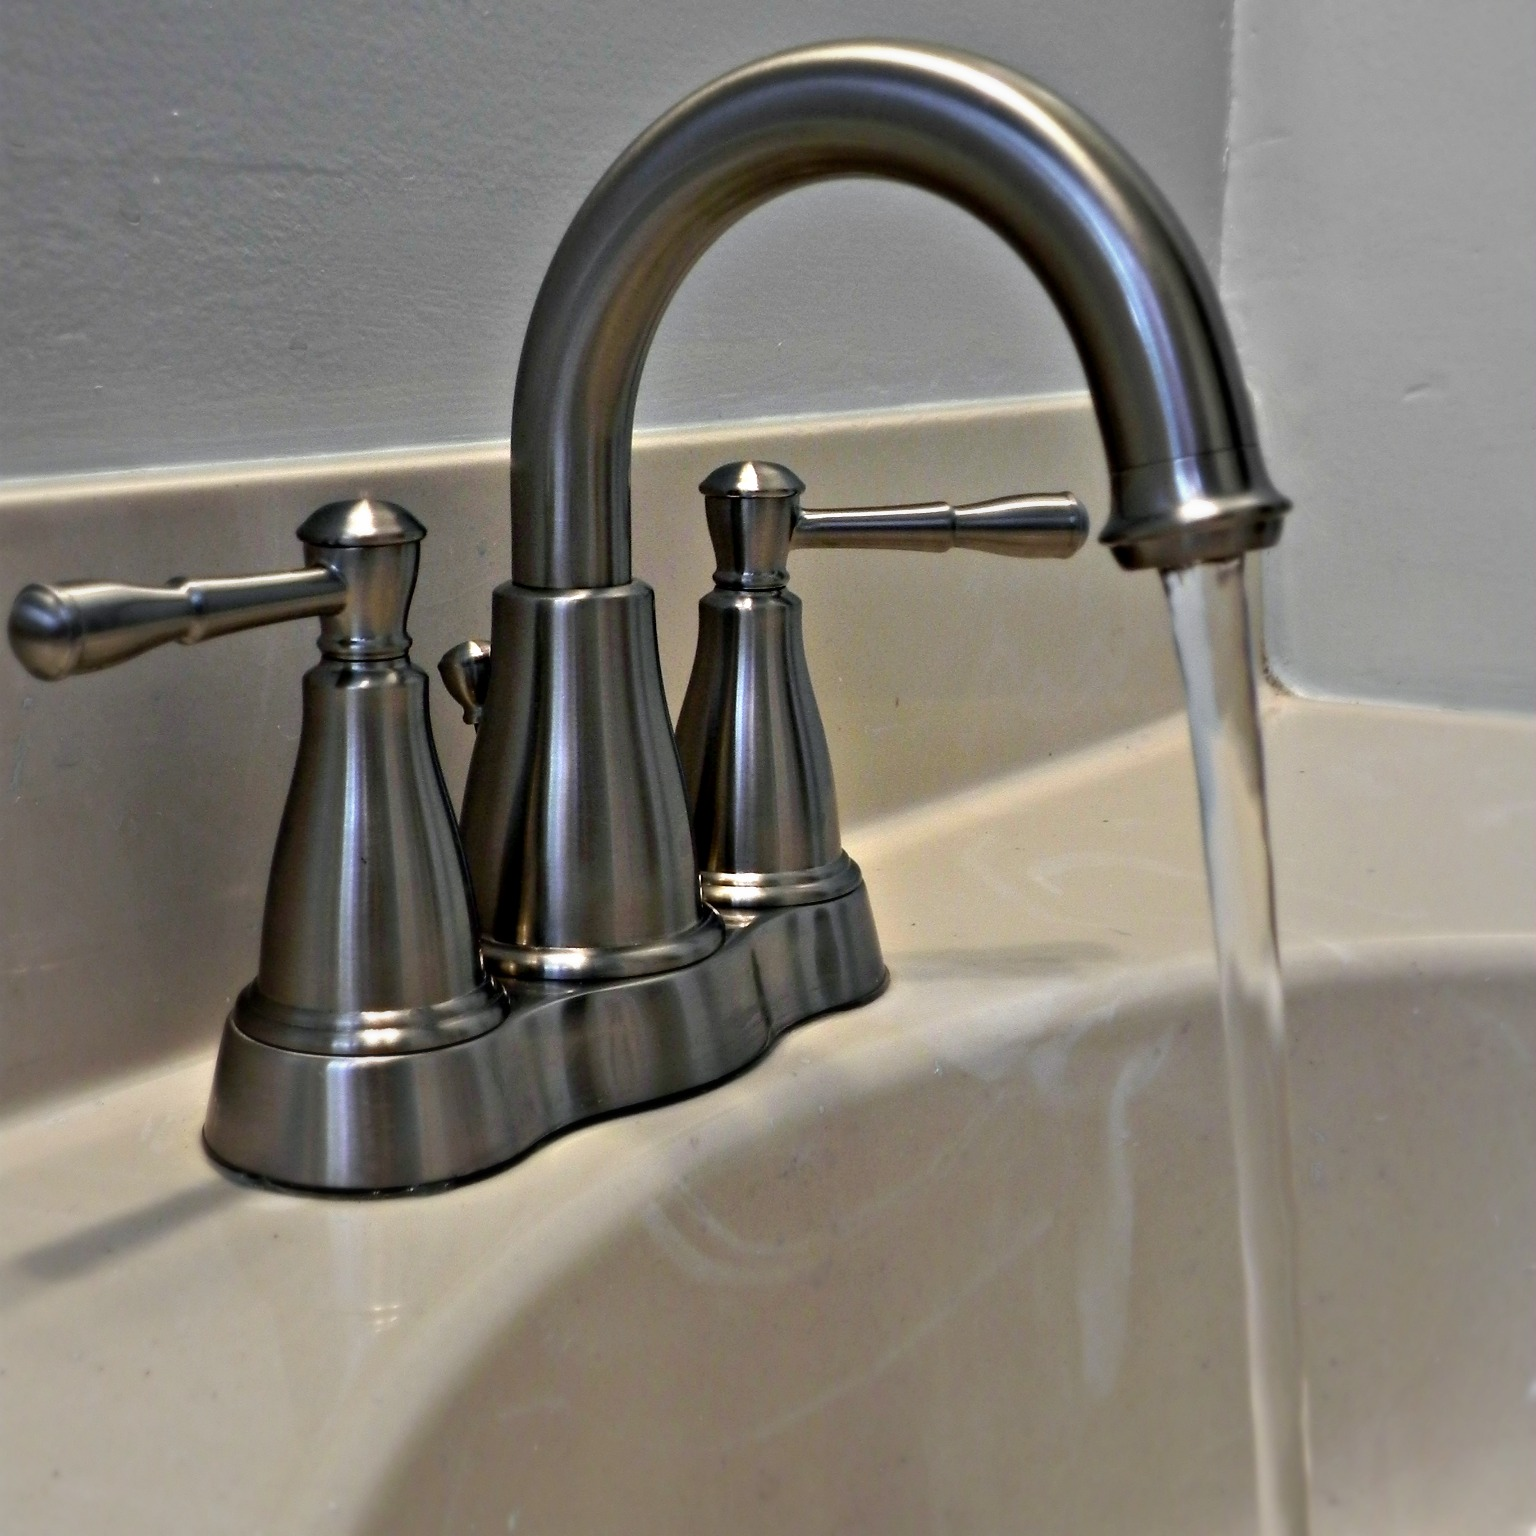 ... brass faucets in the house with a more updated brushed nickel piece